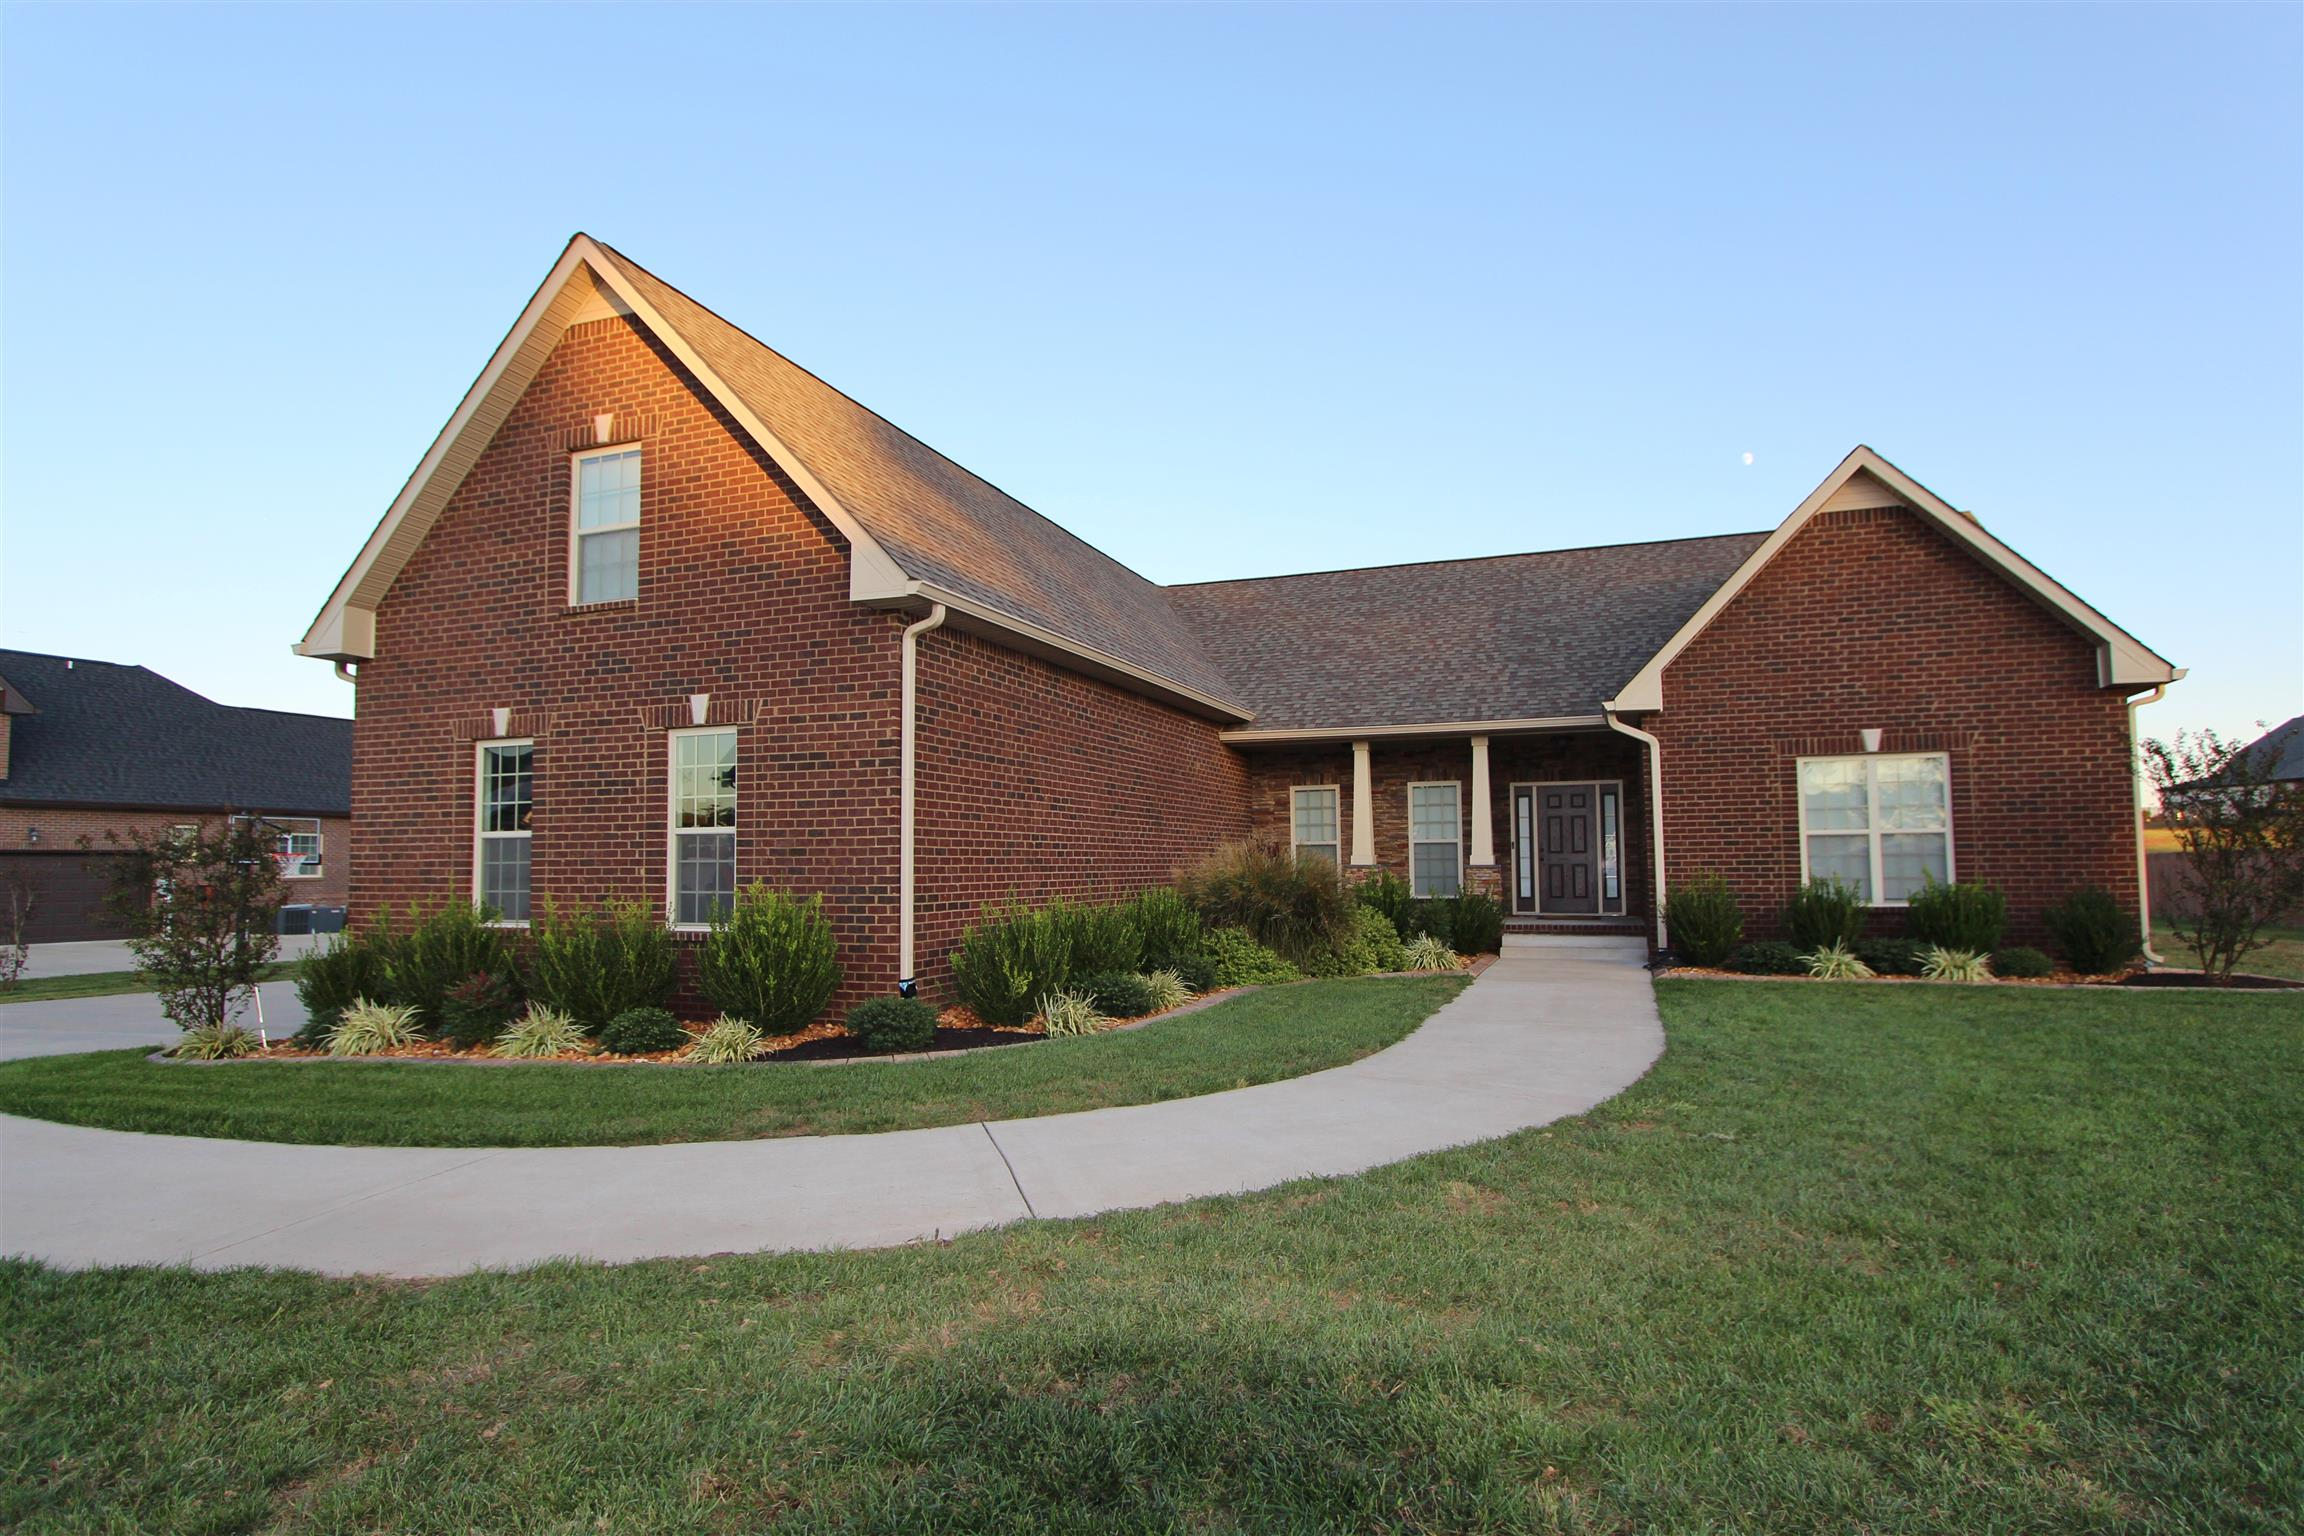 963 Red Bluff Way, Adams, TN 37010 - Adams, TN real estate listing